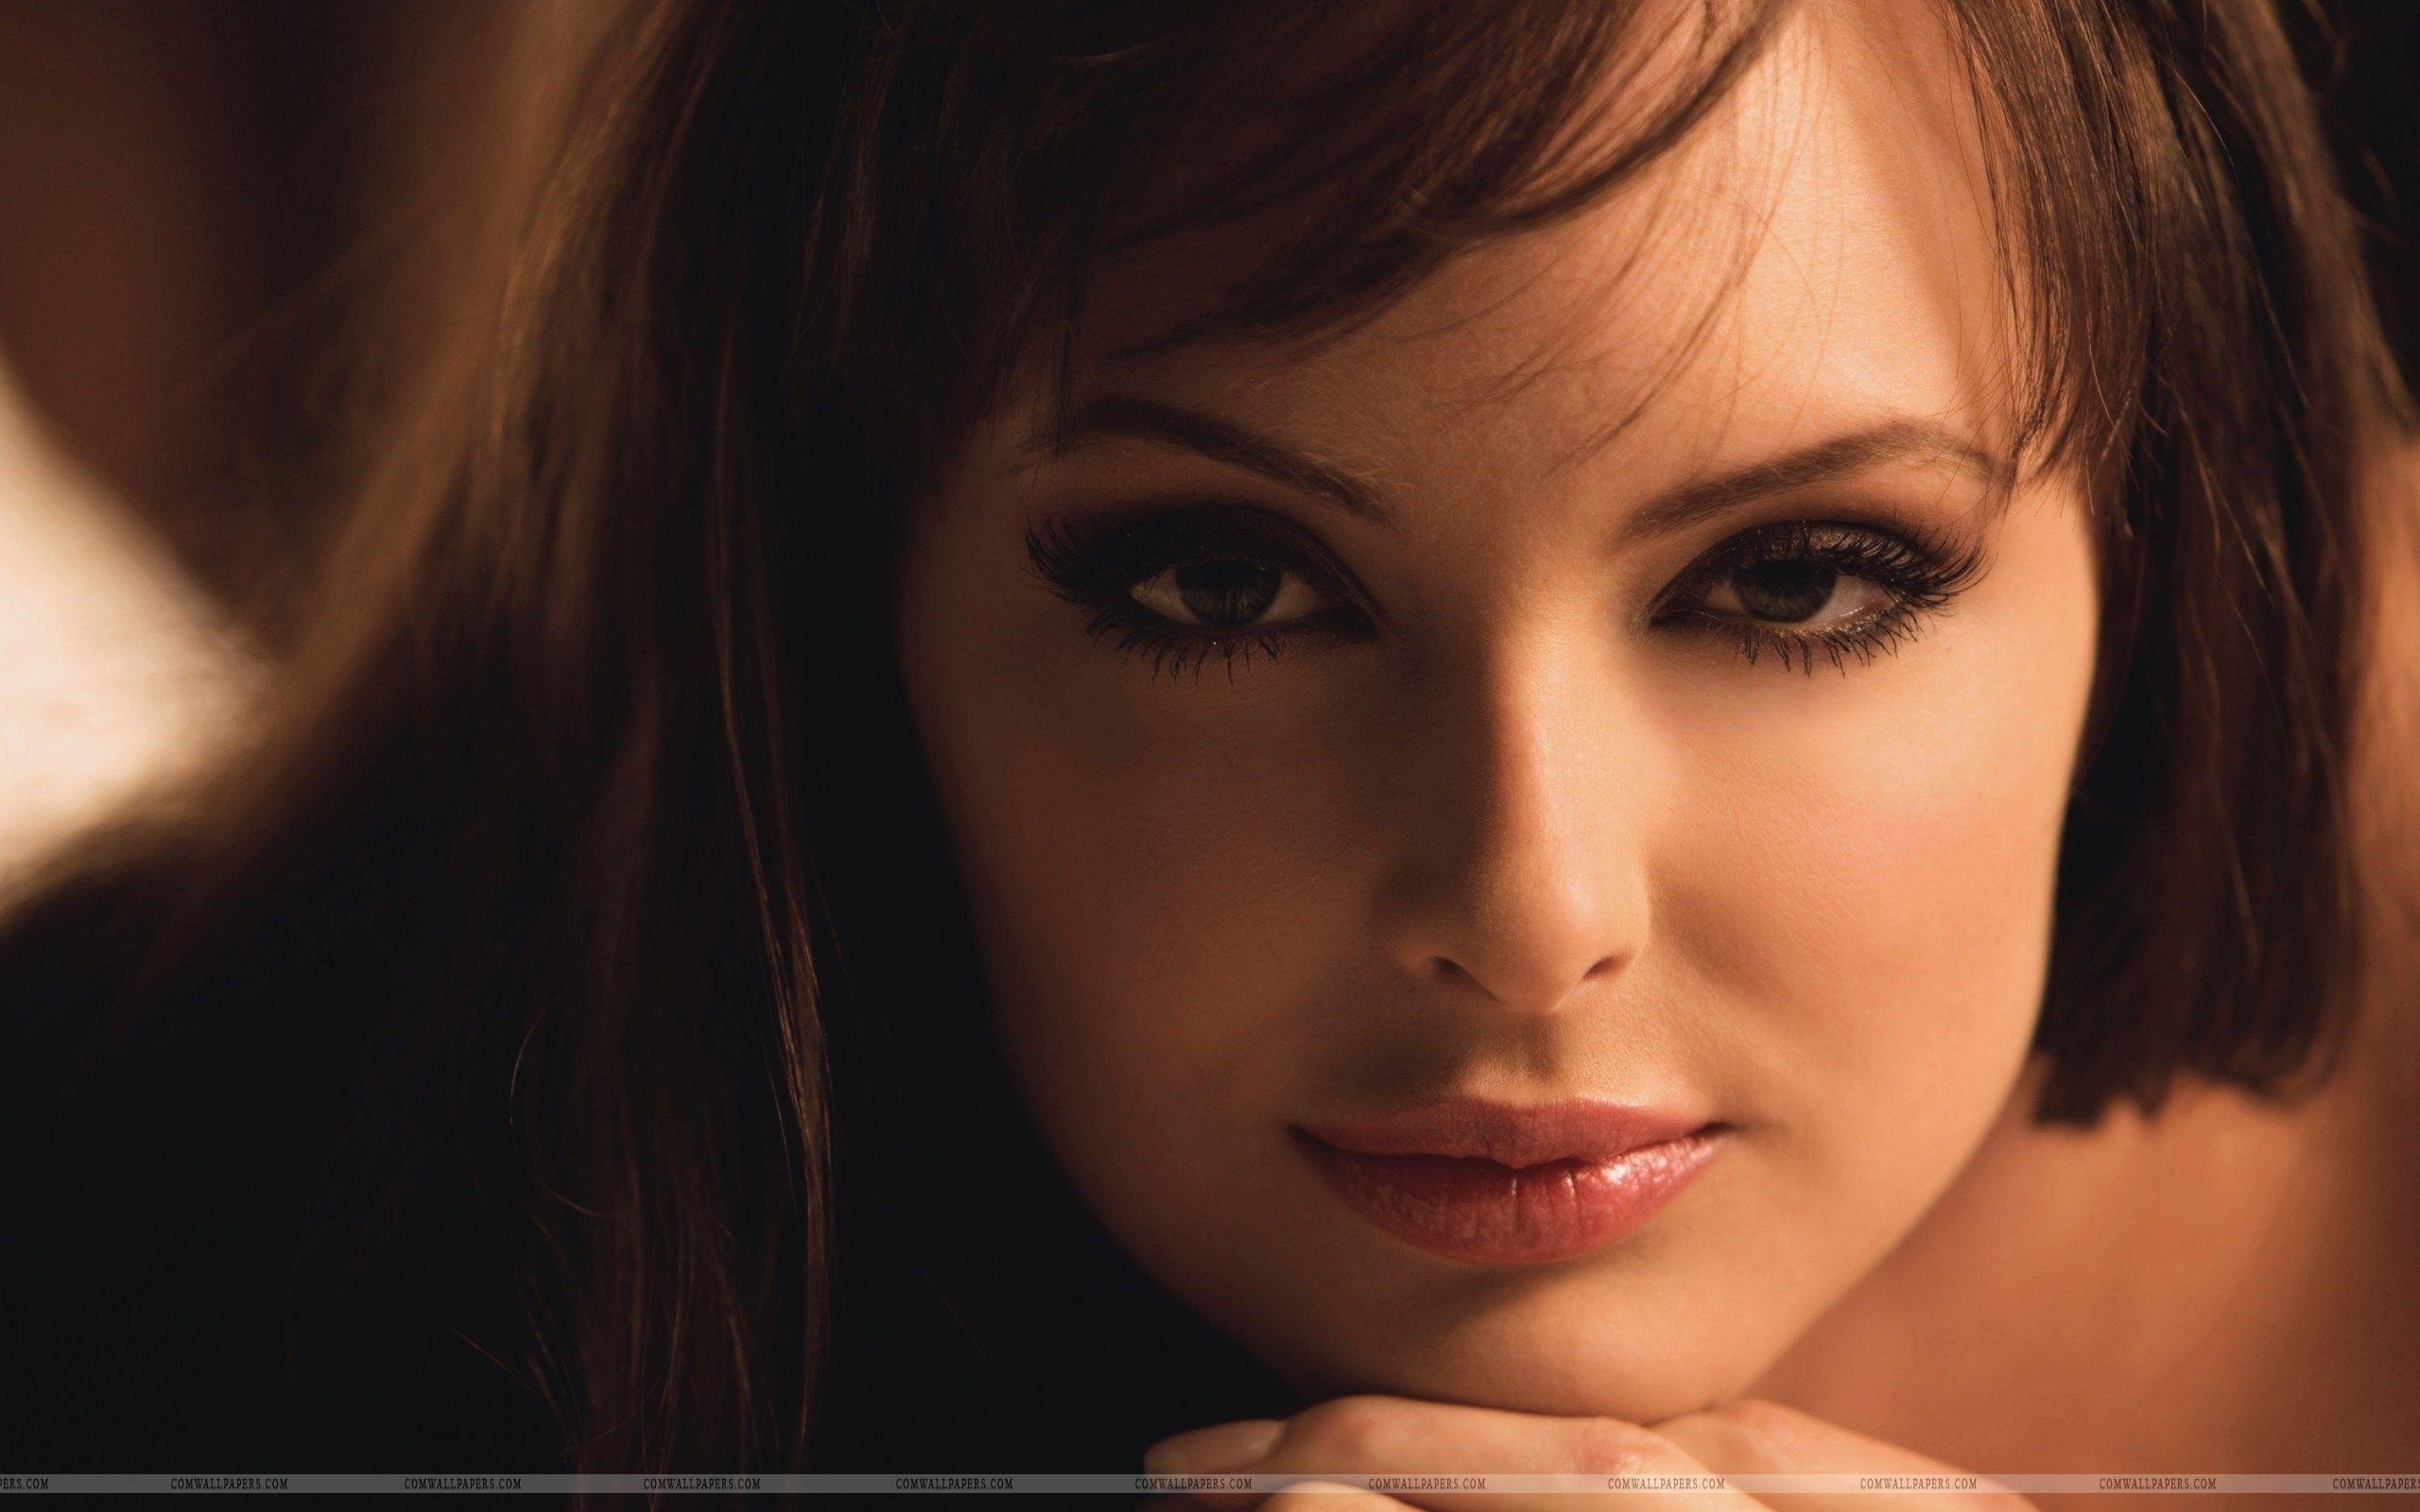 Pretty Ladies Face In Ephremtube: Pretty Faces Wallpapers